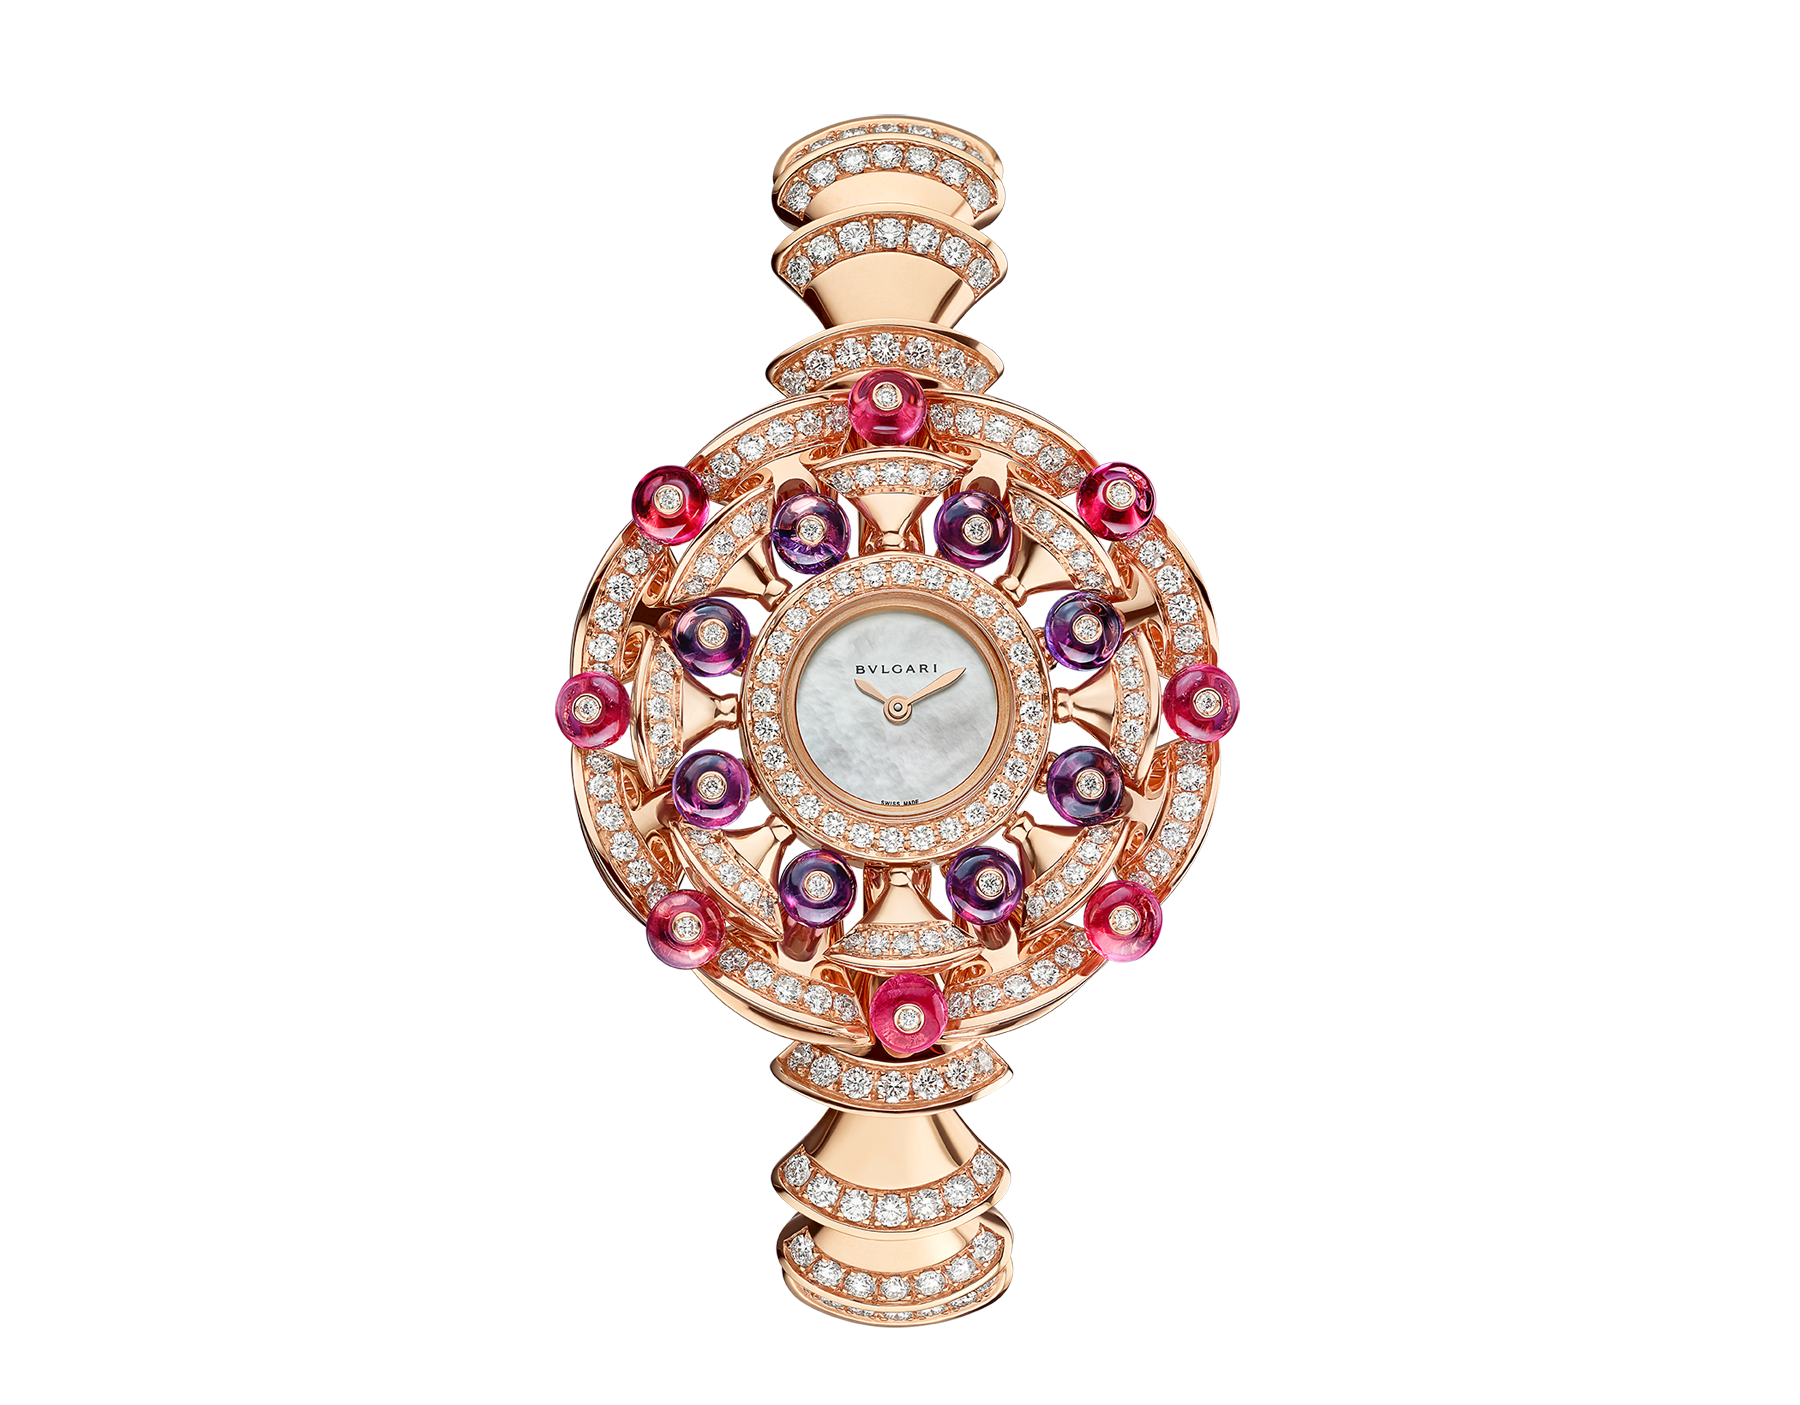 DIVAS' DREAM watch with 18 kt rose gold case set with brilliant-cut diamonds, round shaped rubellites and amethysts beads, white mother-of-pearl dial and 18 kt rose gold bracelet set with brilliant-cut diamonds 102080 image 1